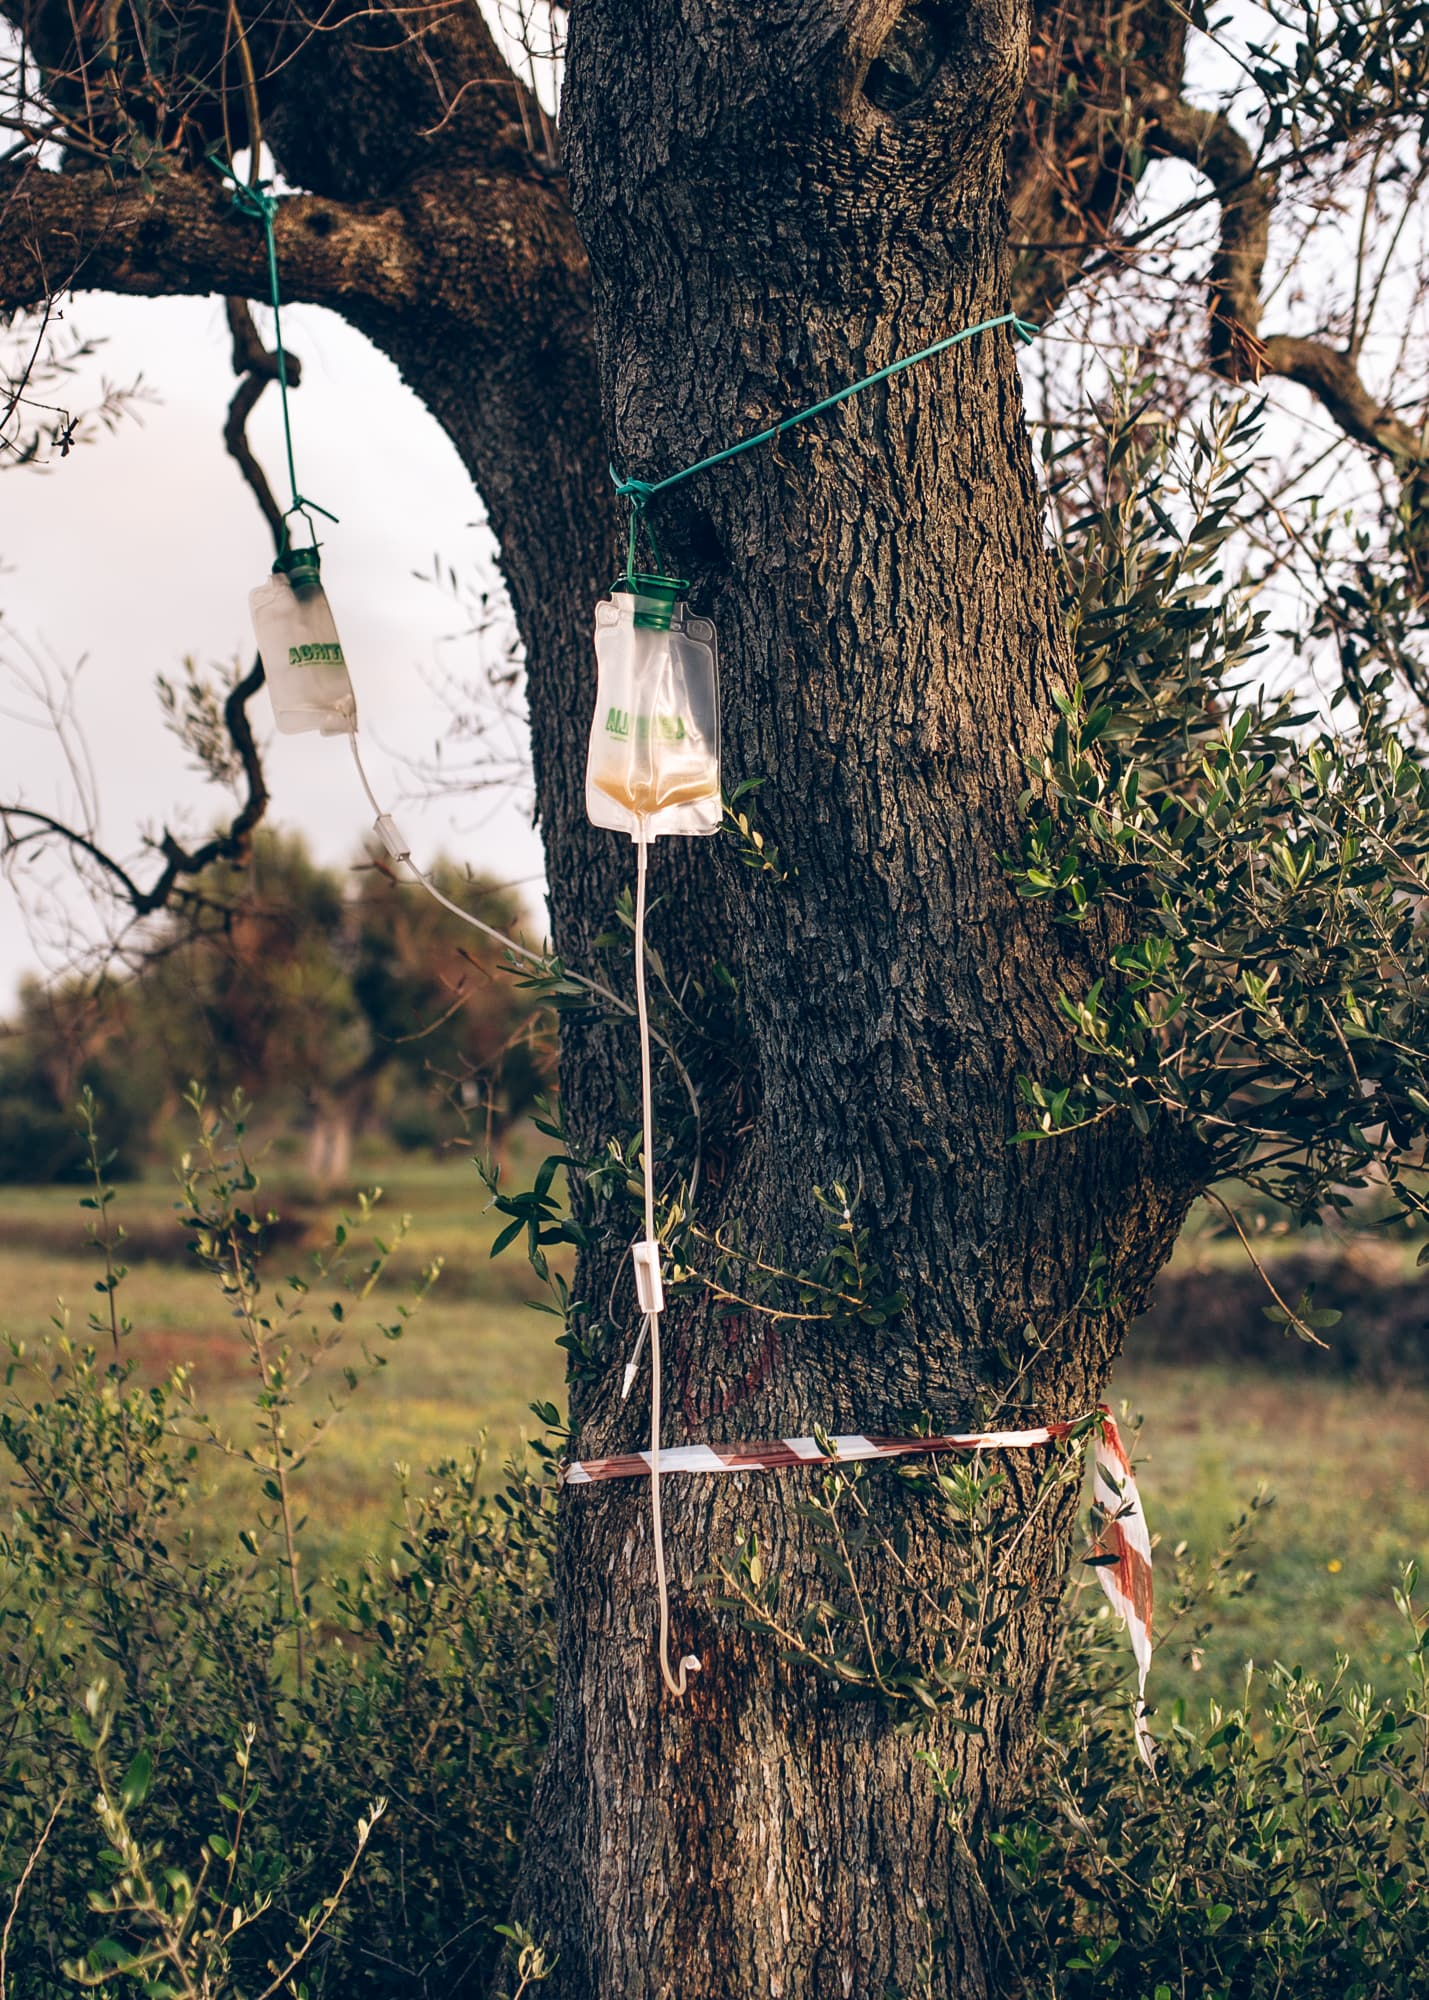 My father is in these trees —The bacterium Xylella Fastidiosa pauca is killing the ancient olive trees in Italy.  It is a disaster in slow motion.